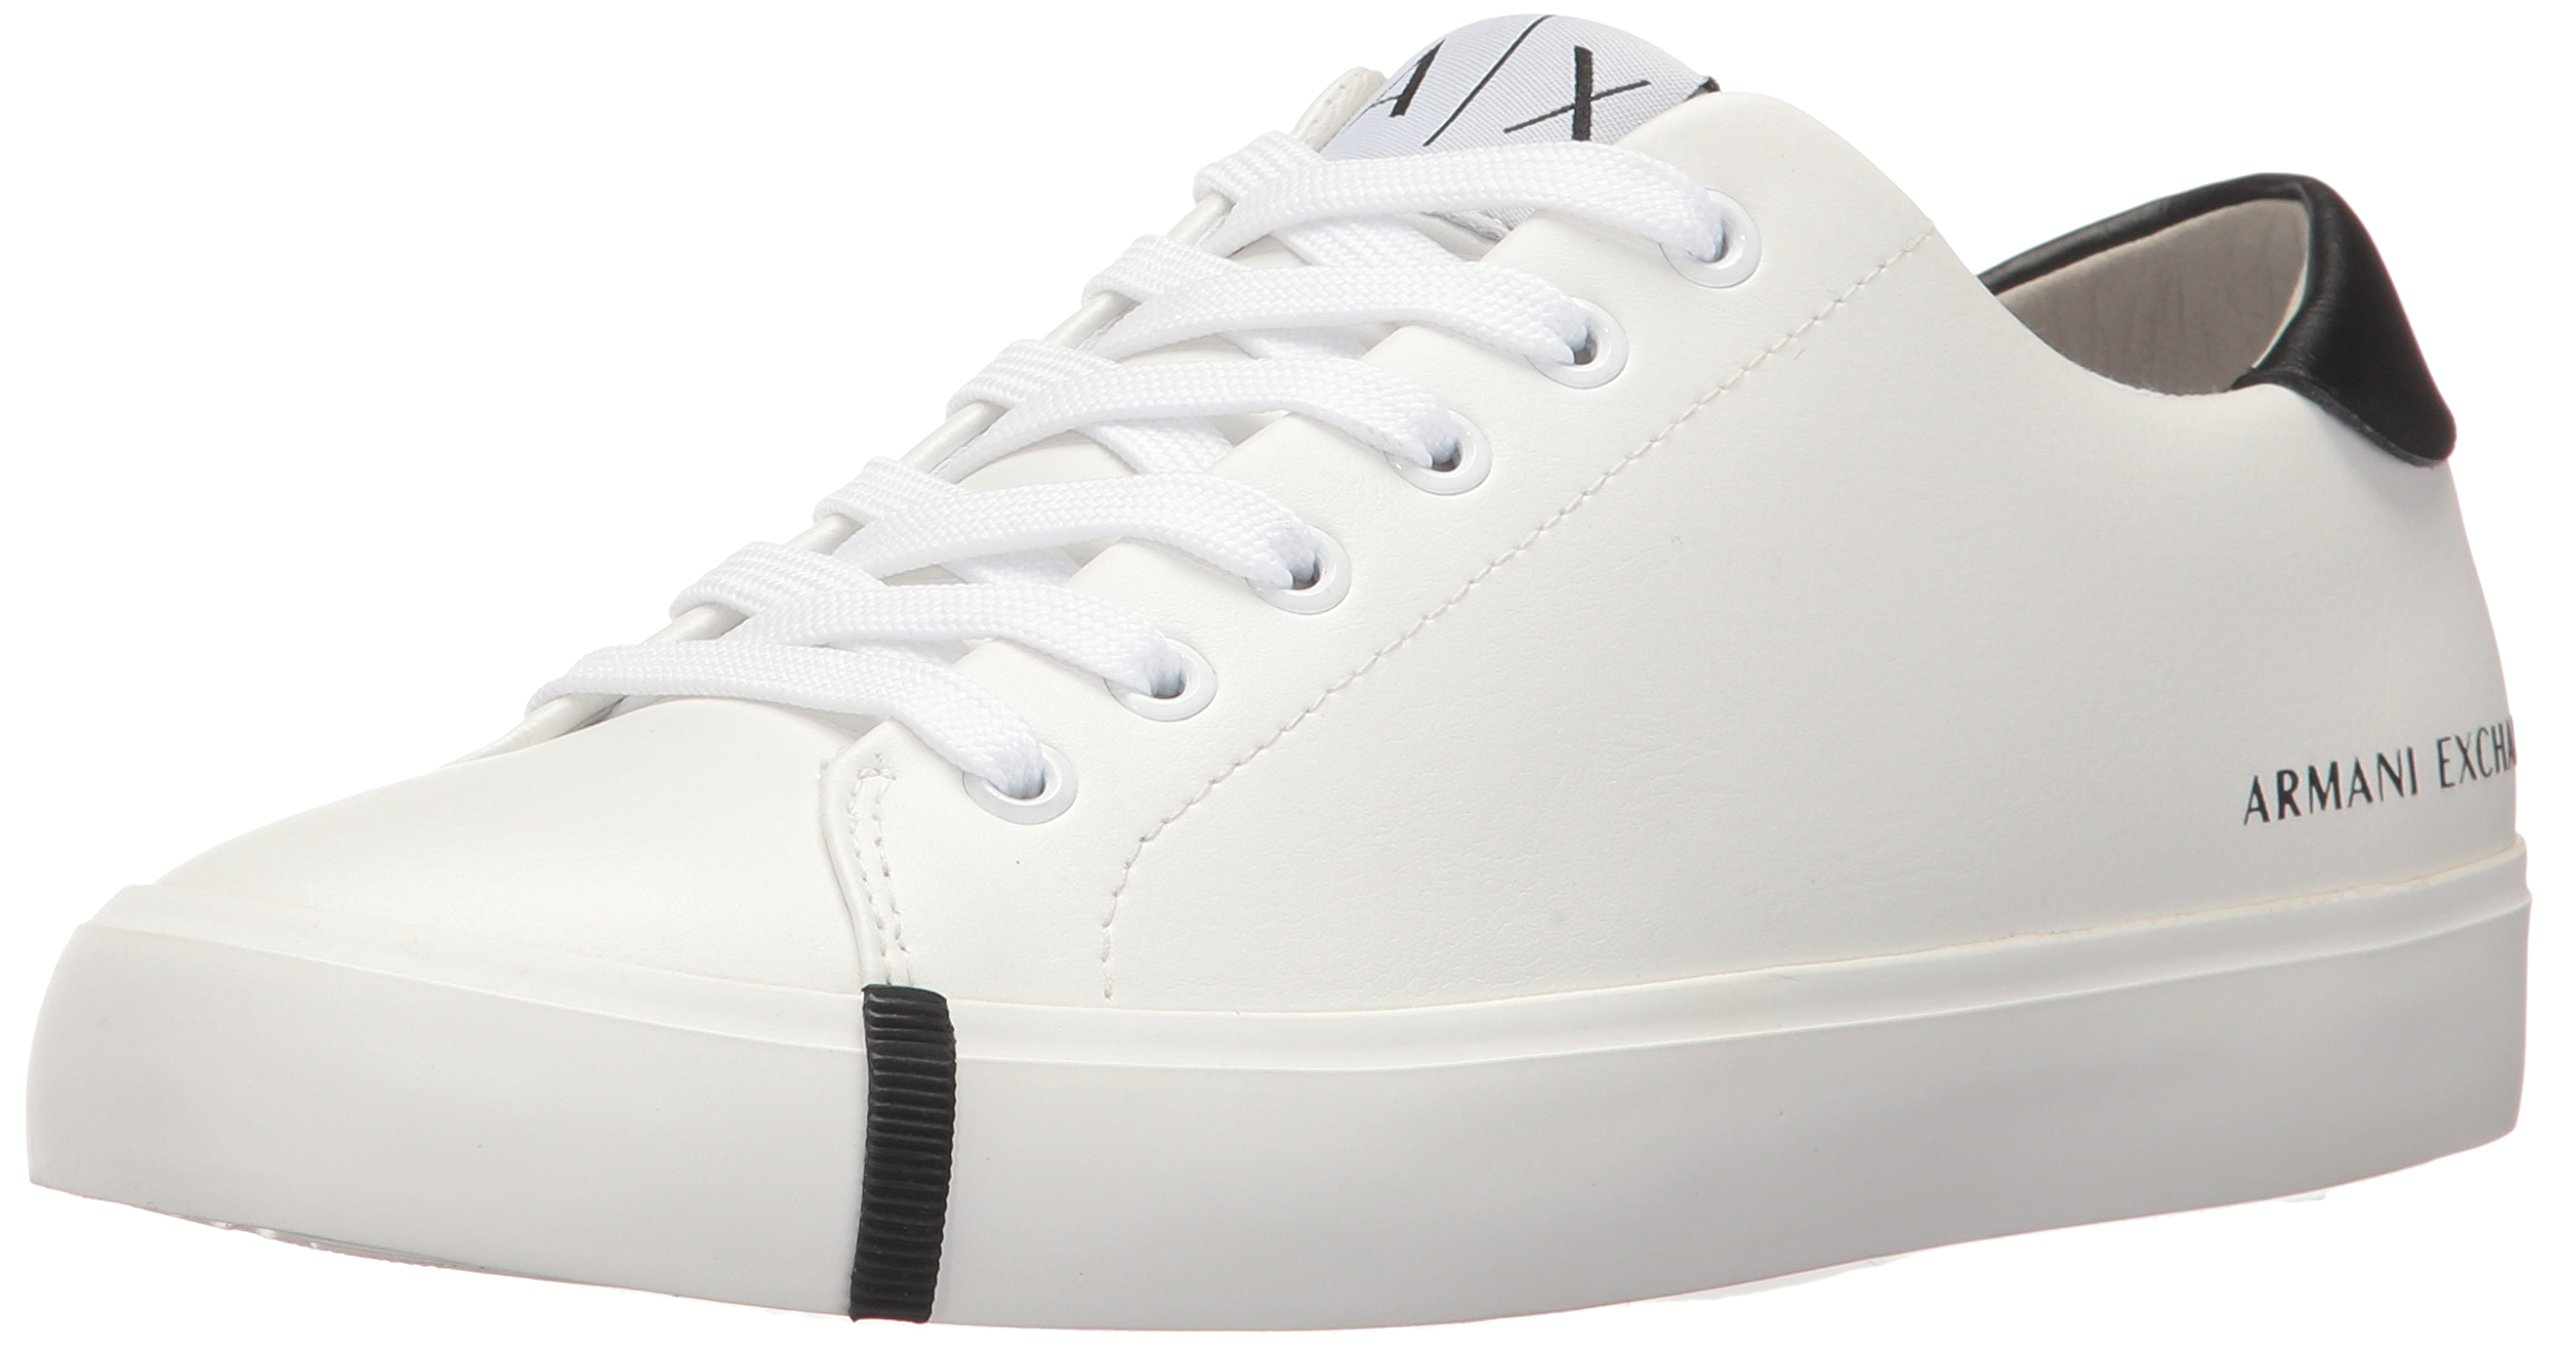 A|X Armani Exchange Women's Eco Leather Low Top Sneaker, Optical White, 10 M US